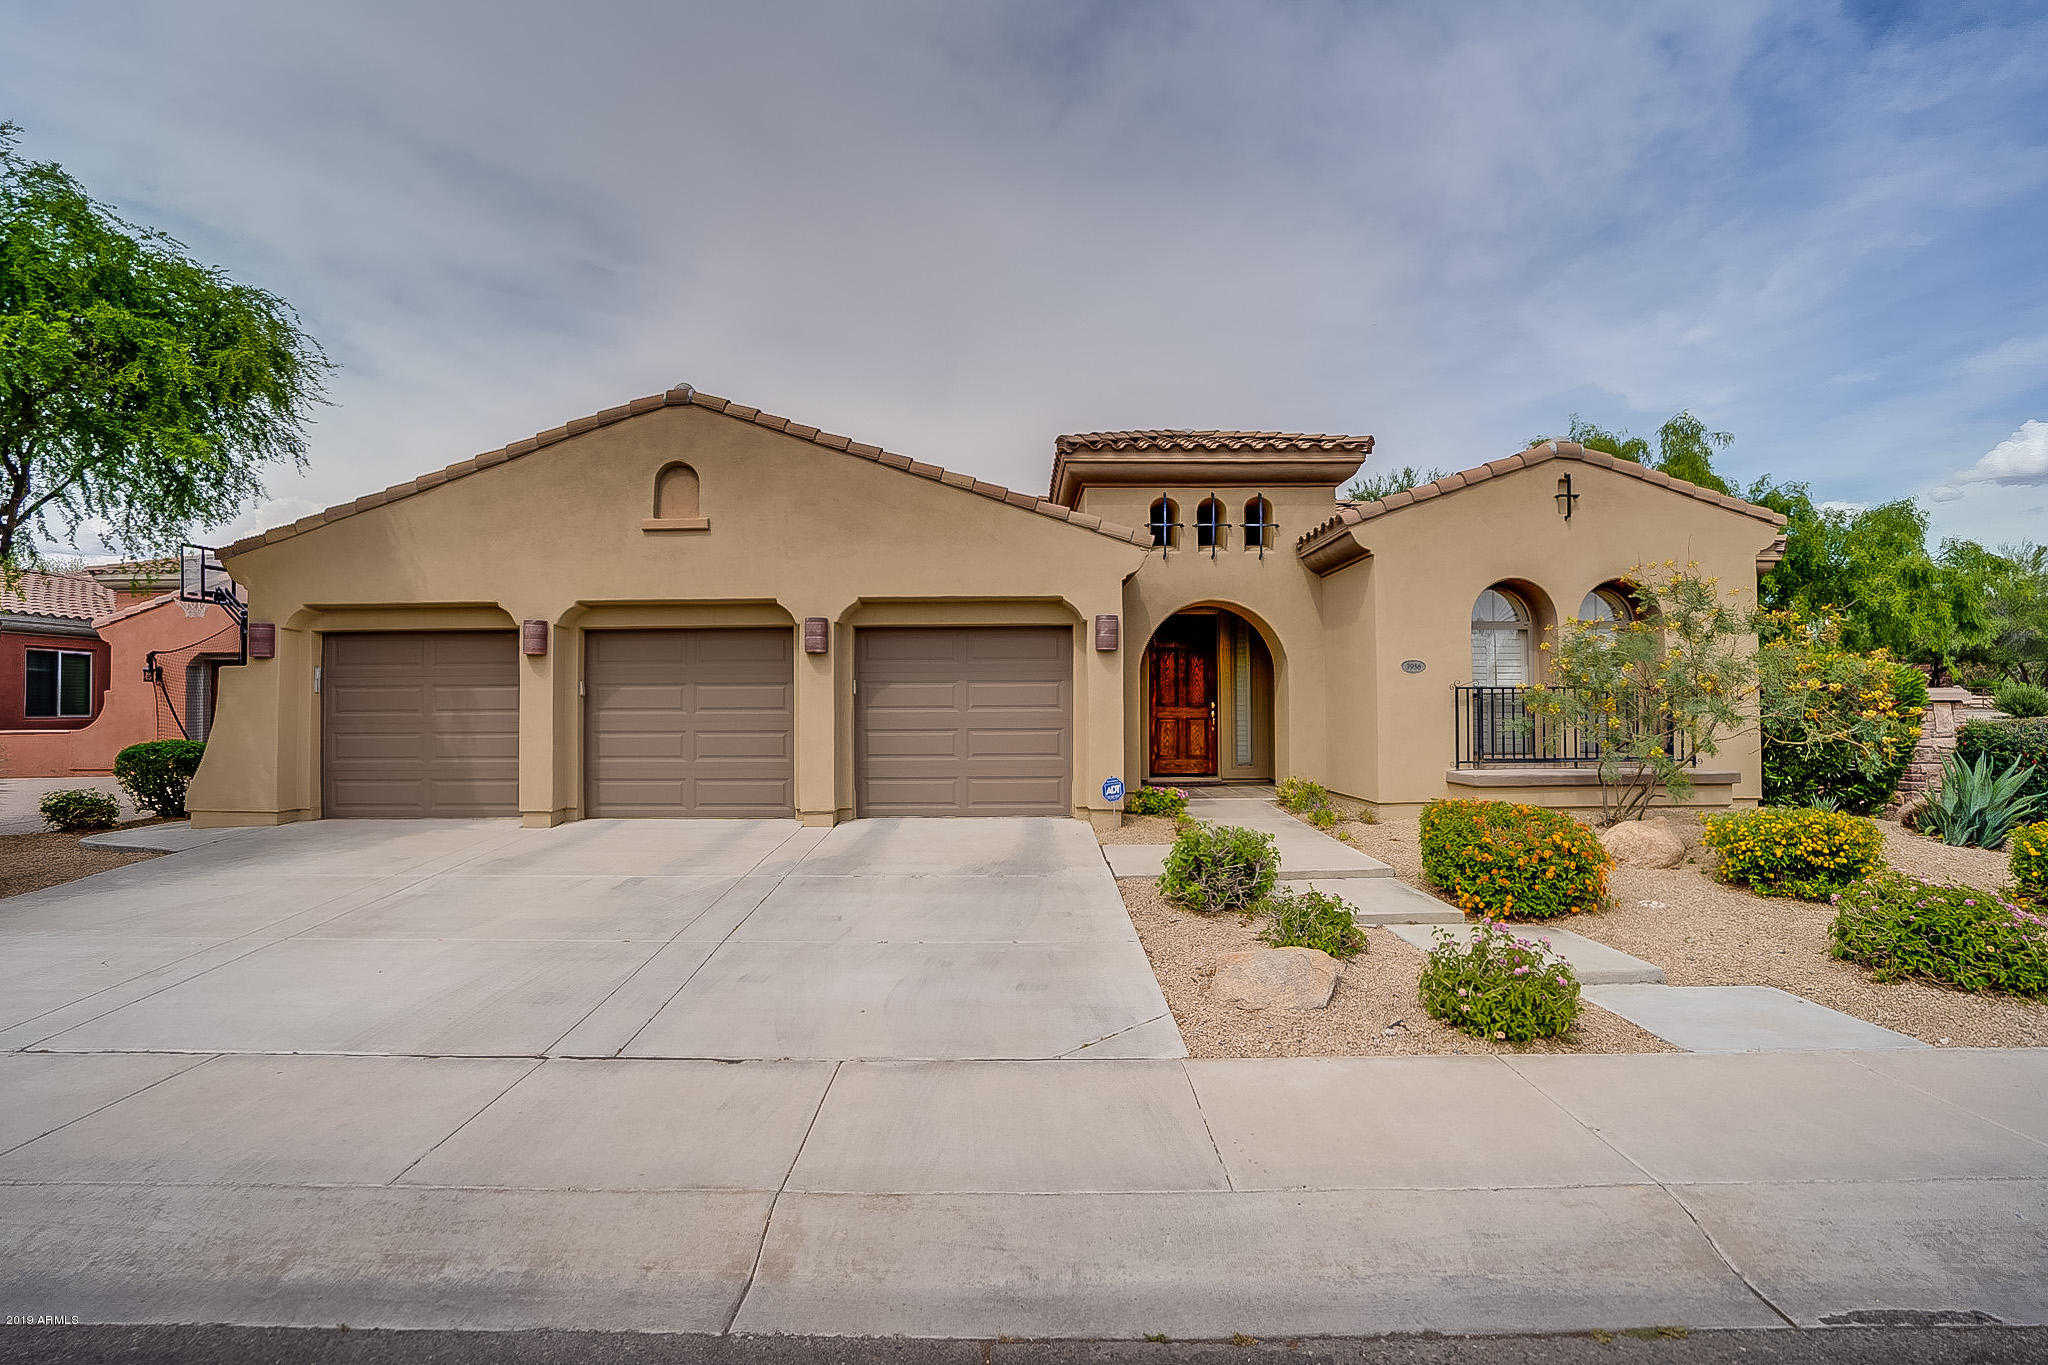 $675,000 - 4Br/4Ba - Home for Sale in Aviano, Phoenix